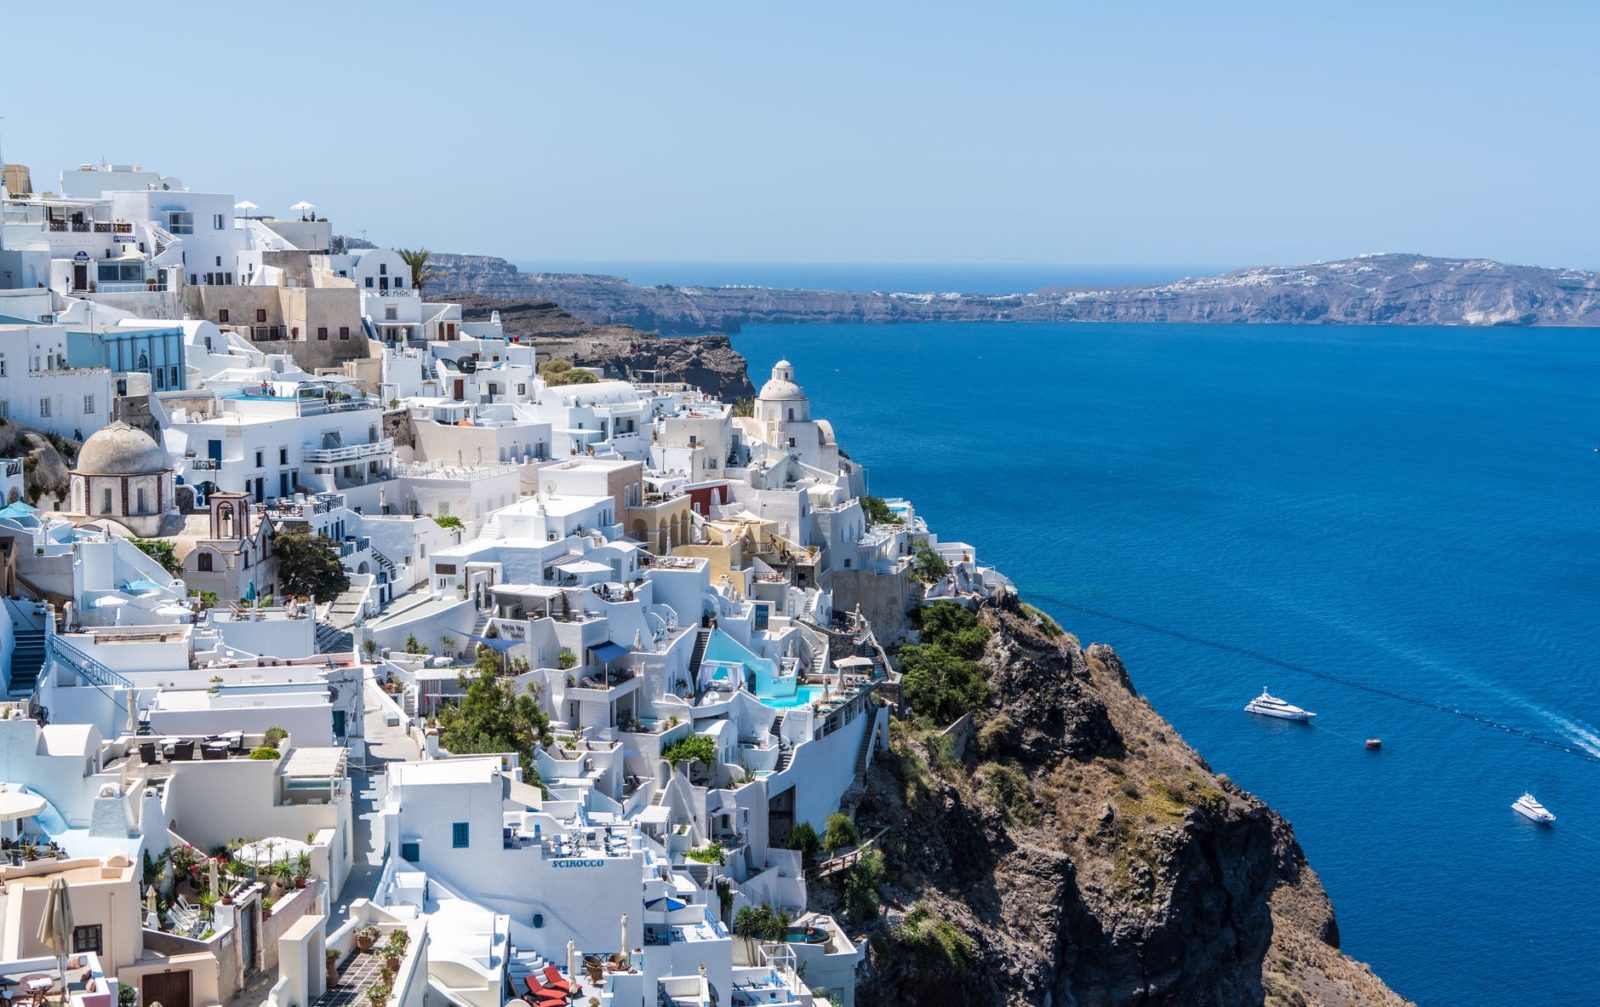 Hotel Deal For Santorini Greece #santorinigreece #weekend